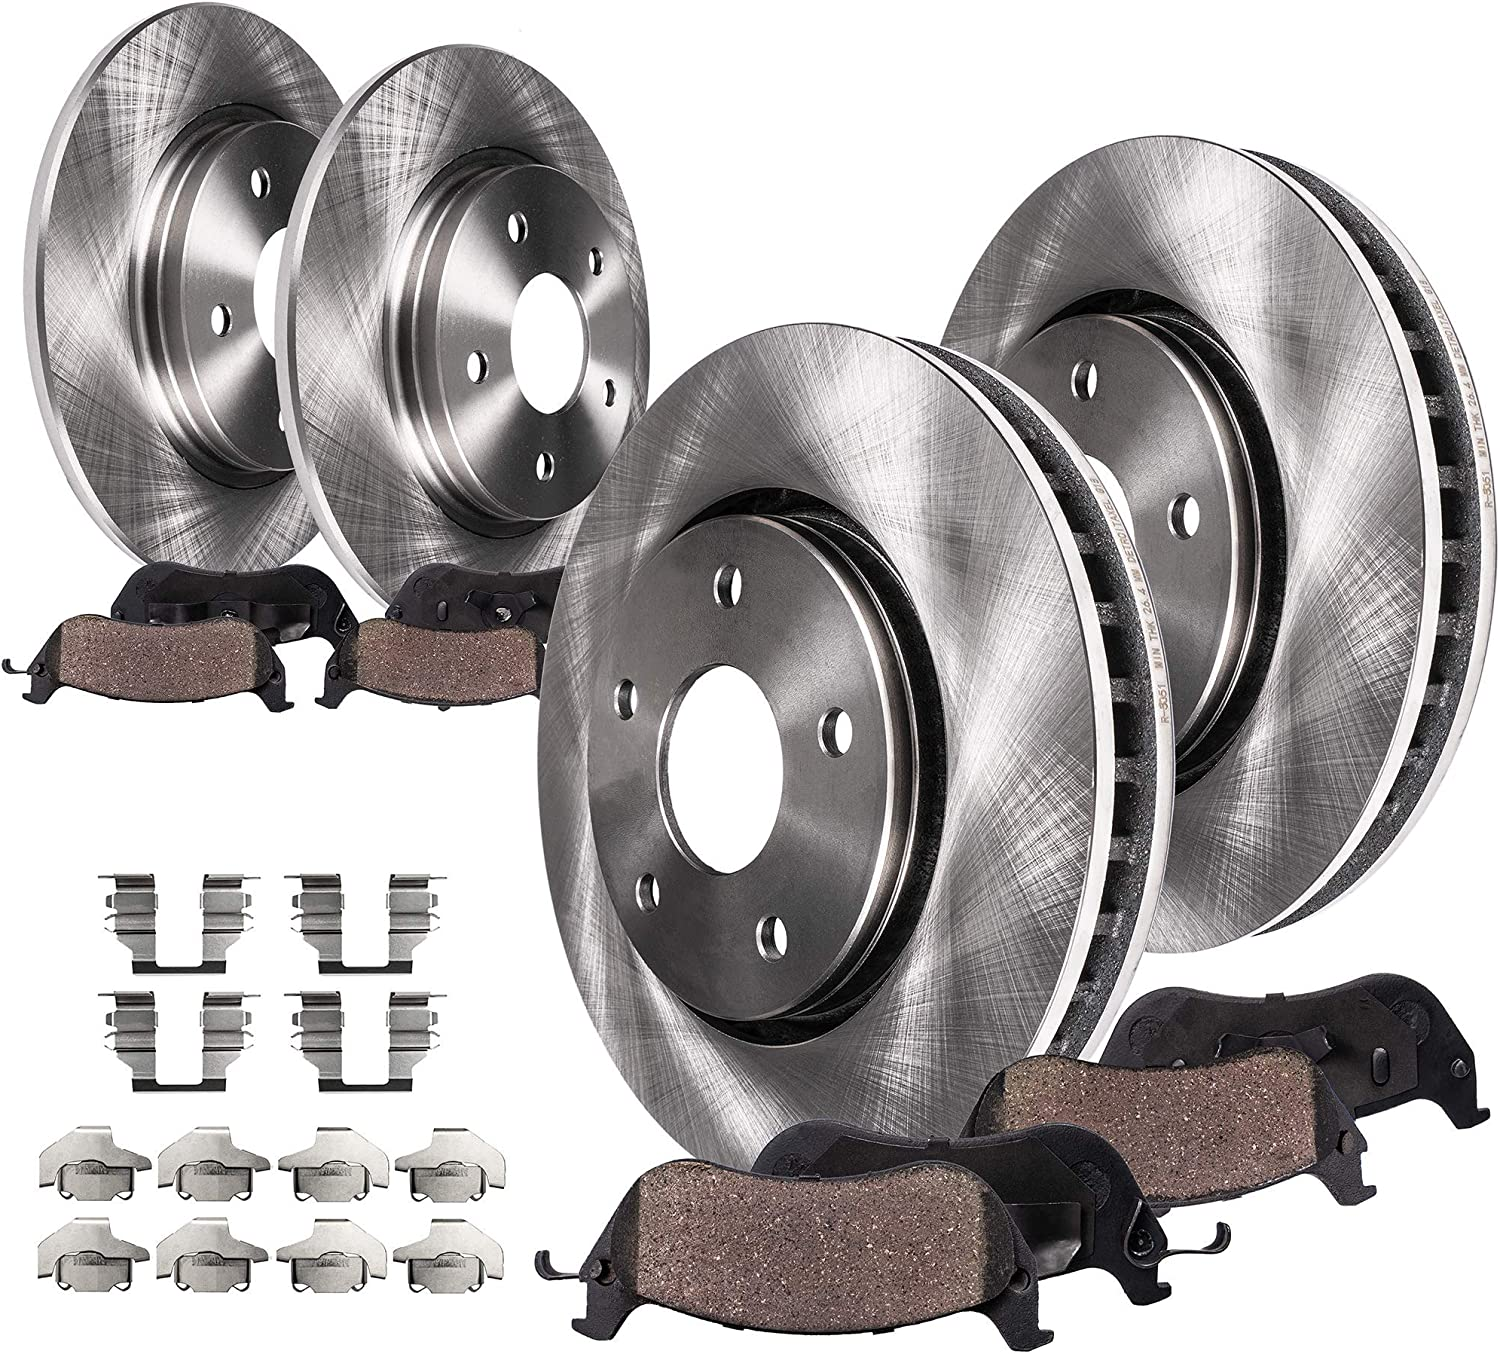 Front Drilled Rotors Pads /& Rear Drums Shoes for 1999-2000 Ford F-150 4WD 5-Lugs